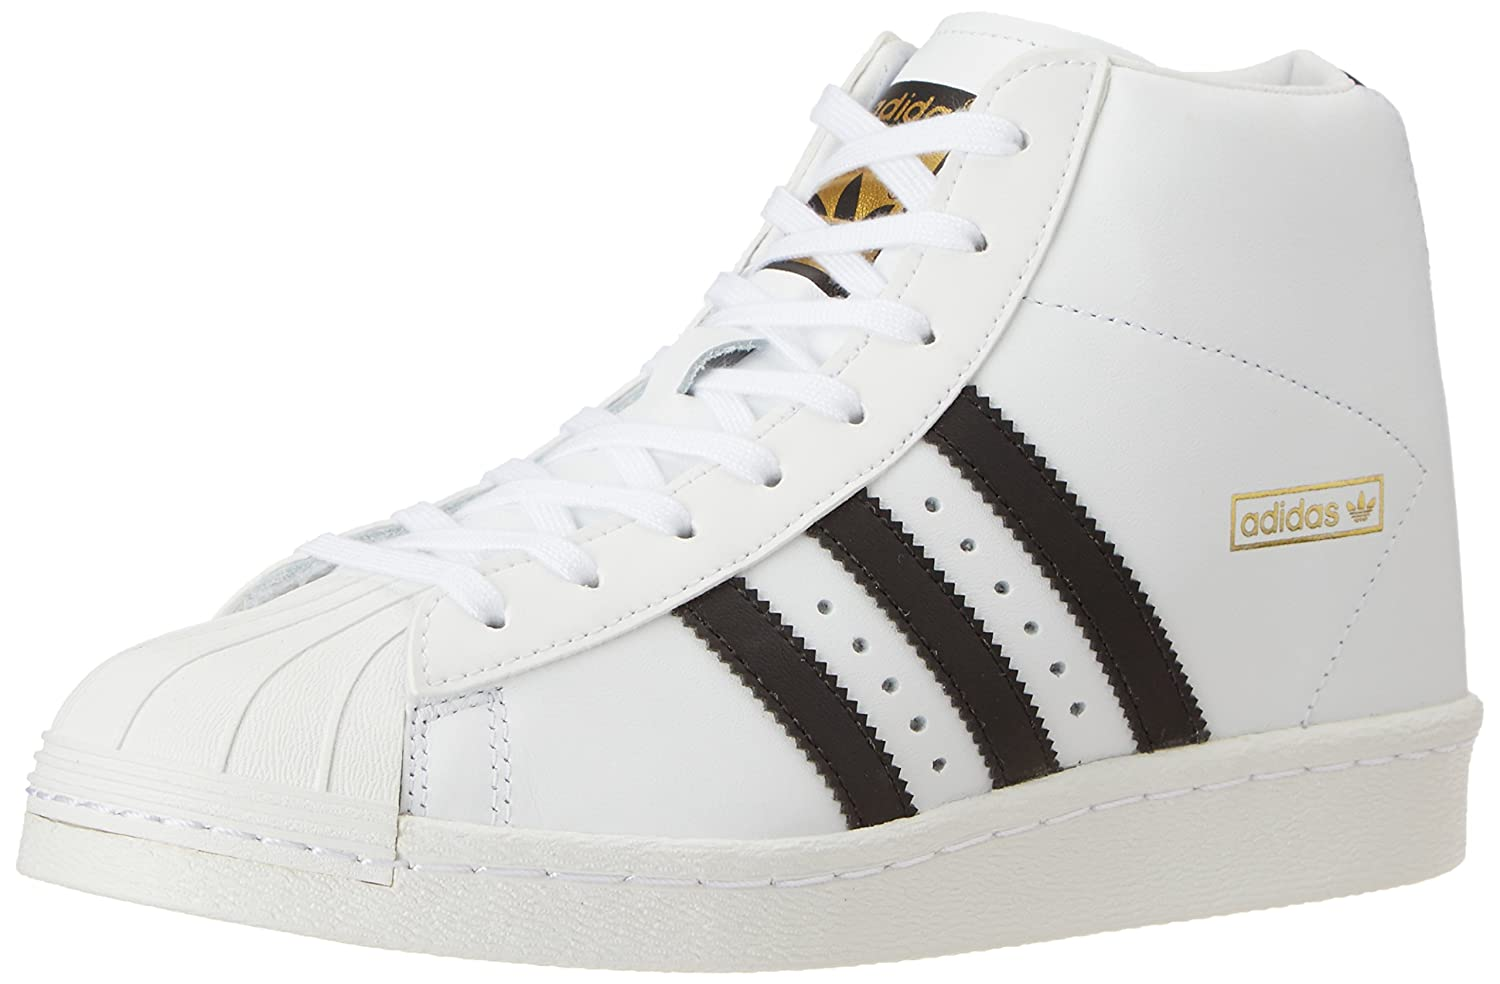 Adidas Superstar Up W Rita Ora White Black Dragon junior Offspring